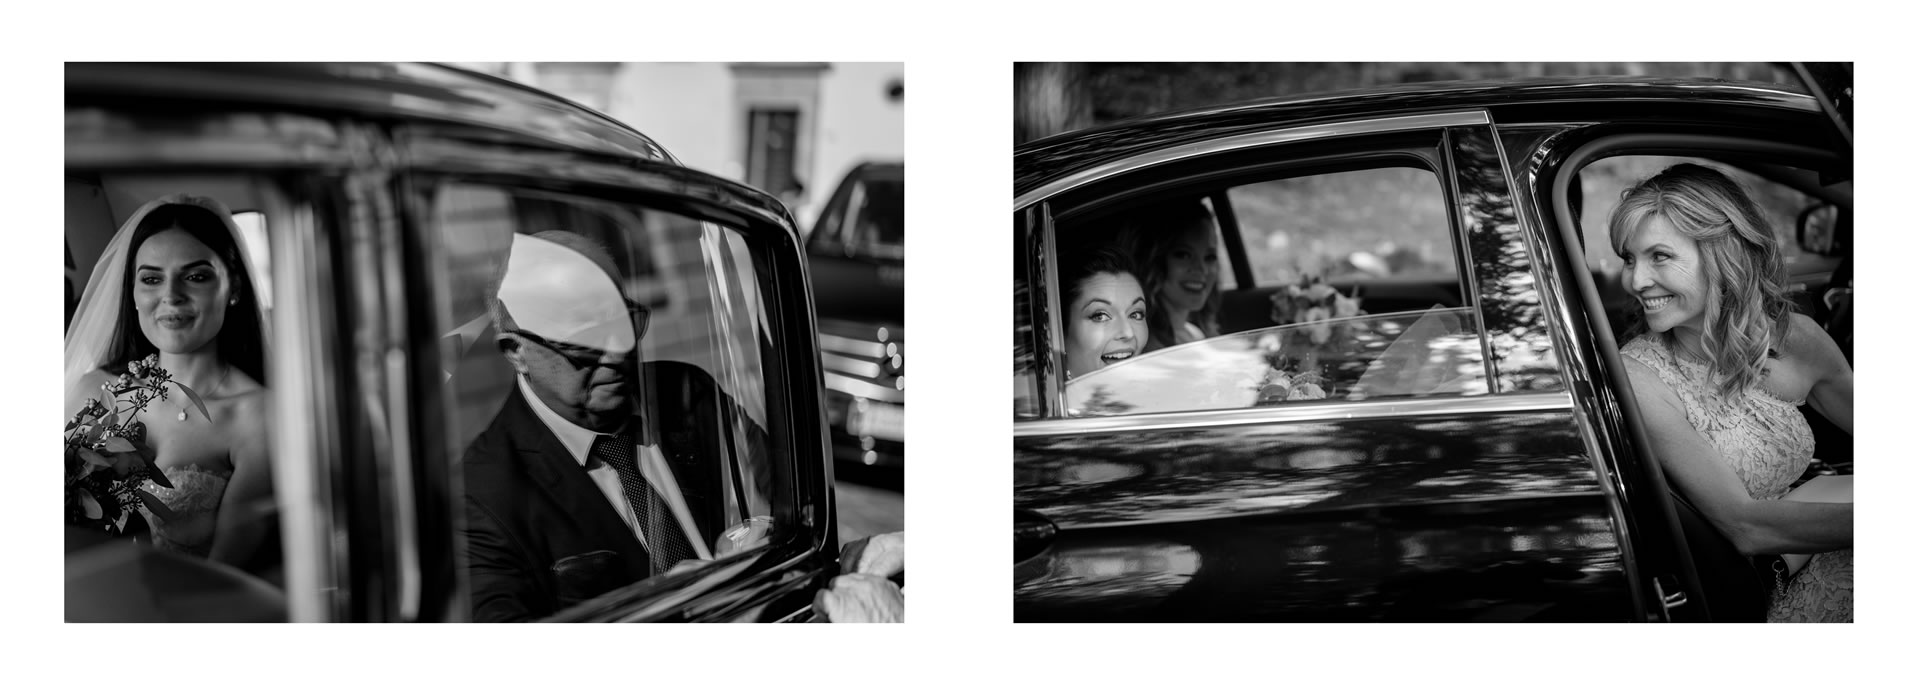 - 16 :: BEST OF 2018 WEDDING: A COLLECTION TO TELL ONE YEAR STORY :: Luxury wedding photography - 15 ::  - 16